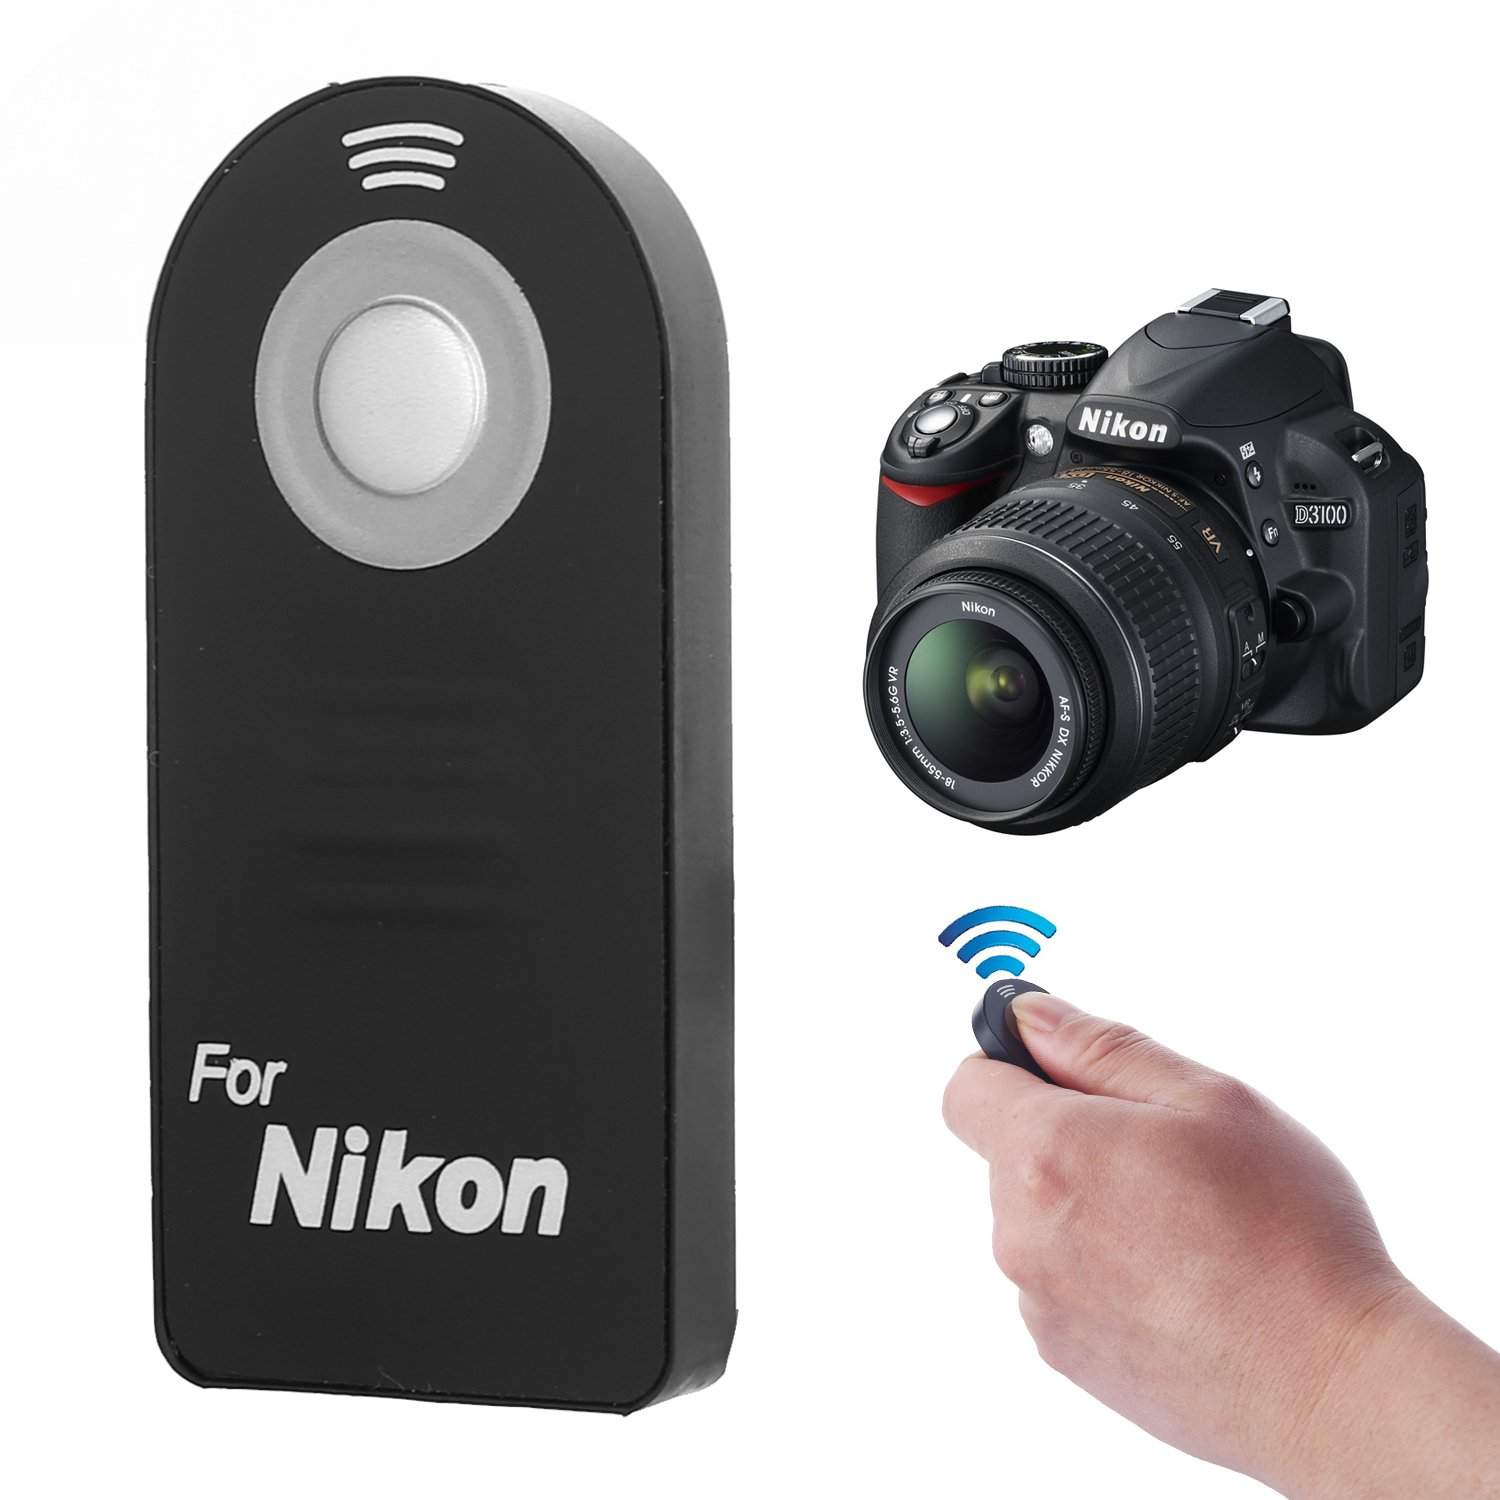 Cheap Remote Nikon D40 Find Deals On Line At Where To Get Parts Diagram For A D5000 Slr With Dx Vr Afs Quotations Crazefoto Wireless Control Shutter Release D5300 D3200 D5100 D7000